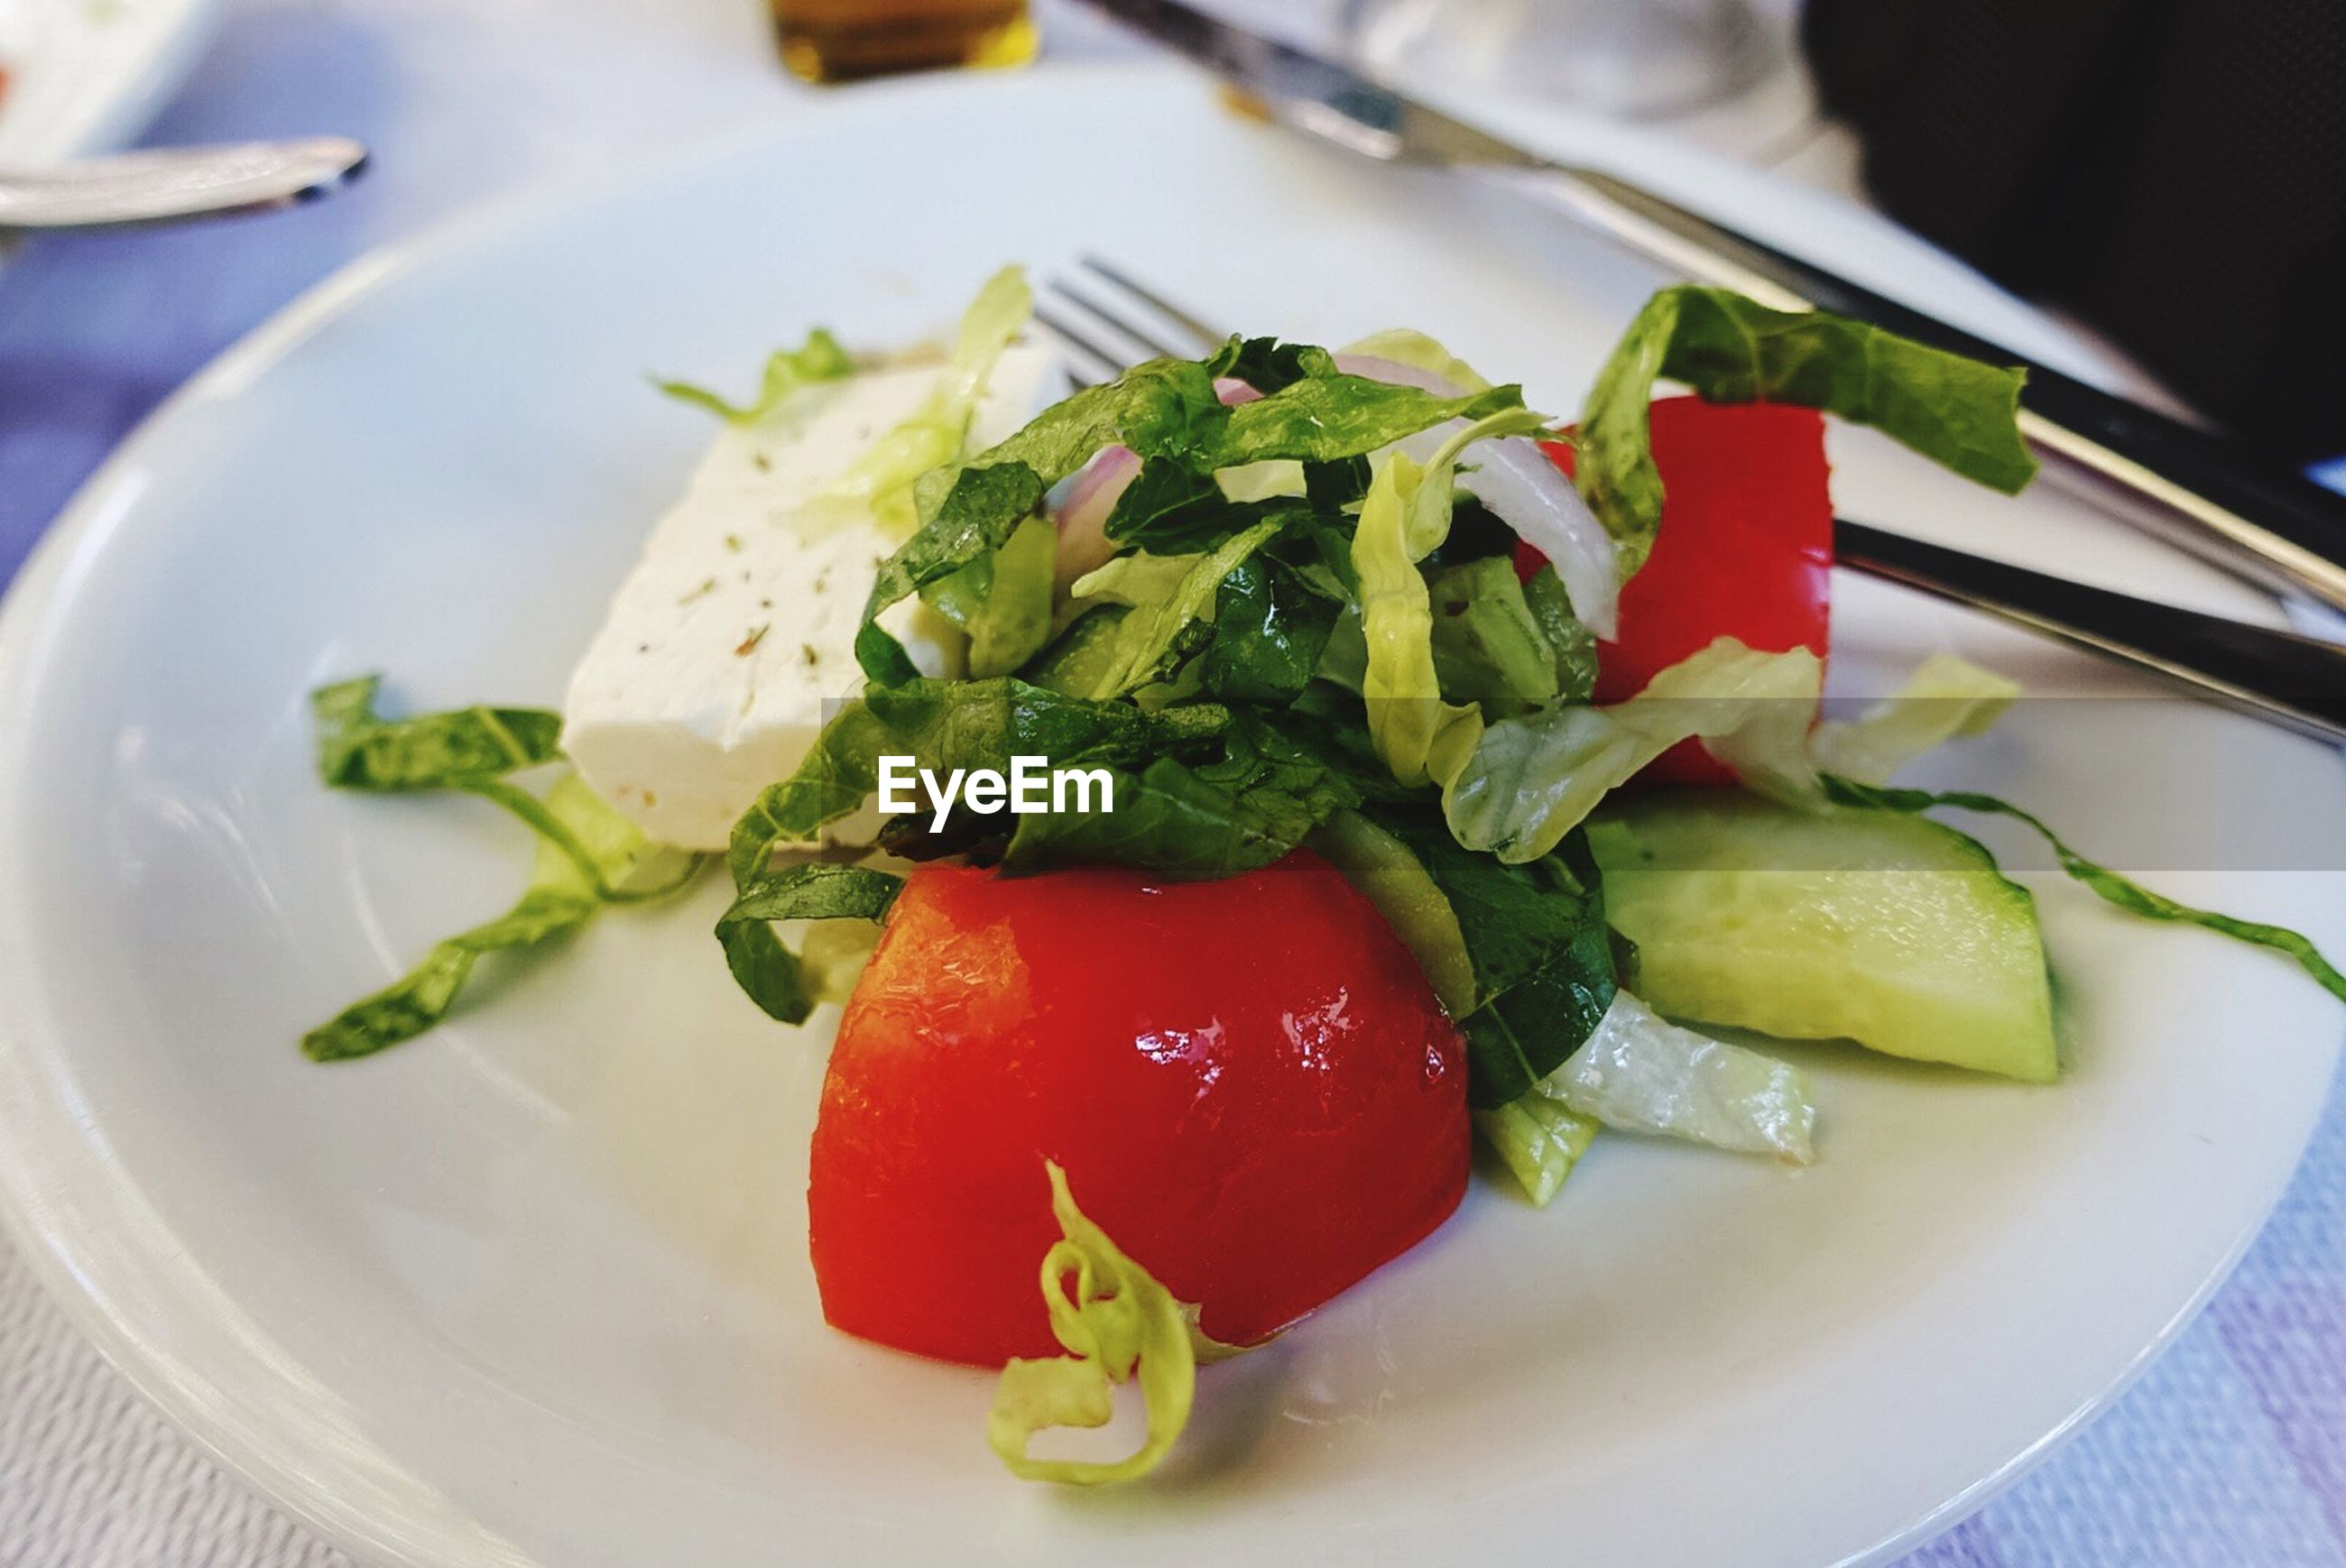 food and drink, food, plate, indoors, ready-to-eat, freshness, close-up, healthy eating, serving size, meal, leaf, appetizer, temptation, salad, vegetable, indulgence, tomato, cherry tomato, red, focus on foreground, food styling, garnish